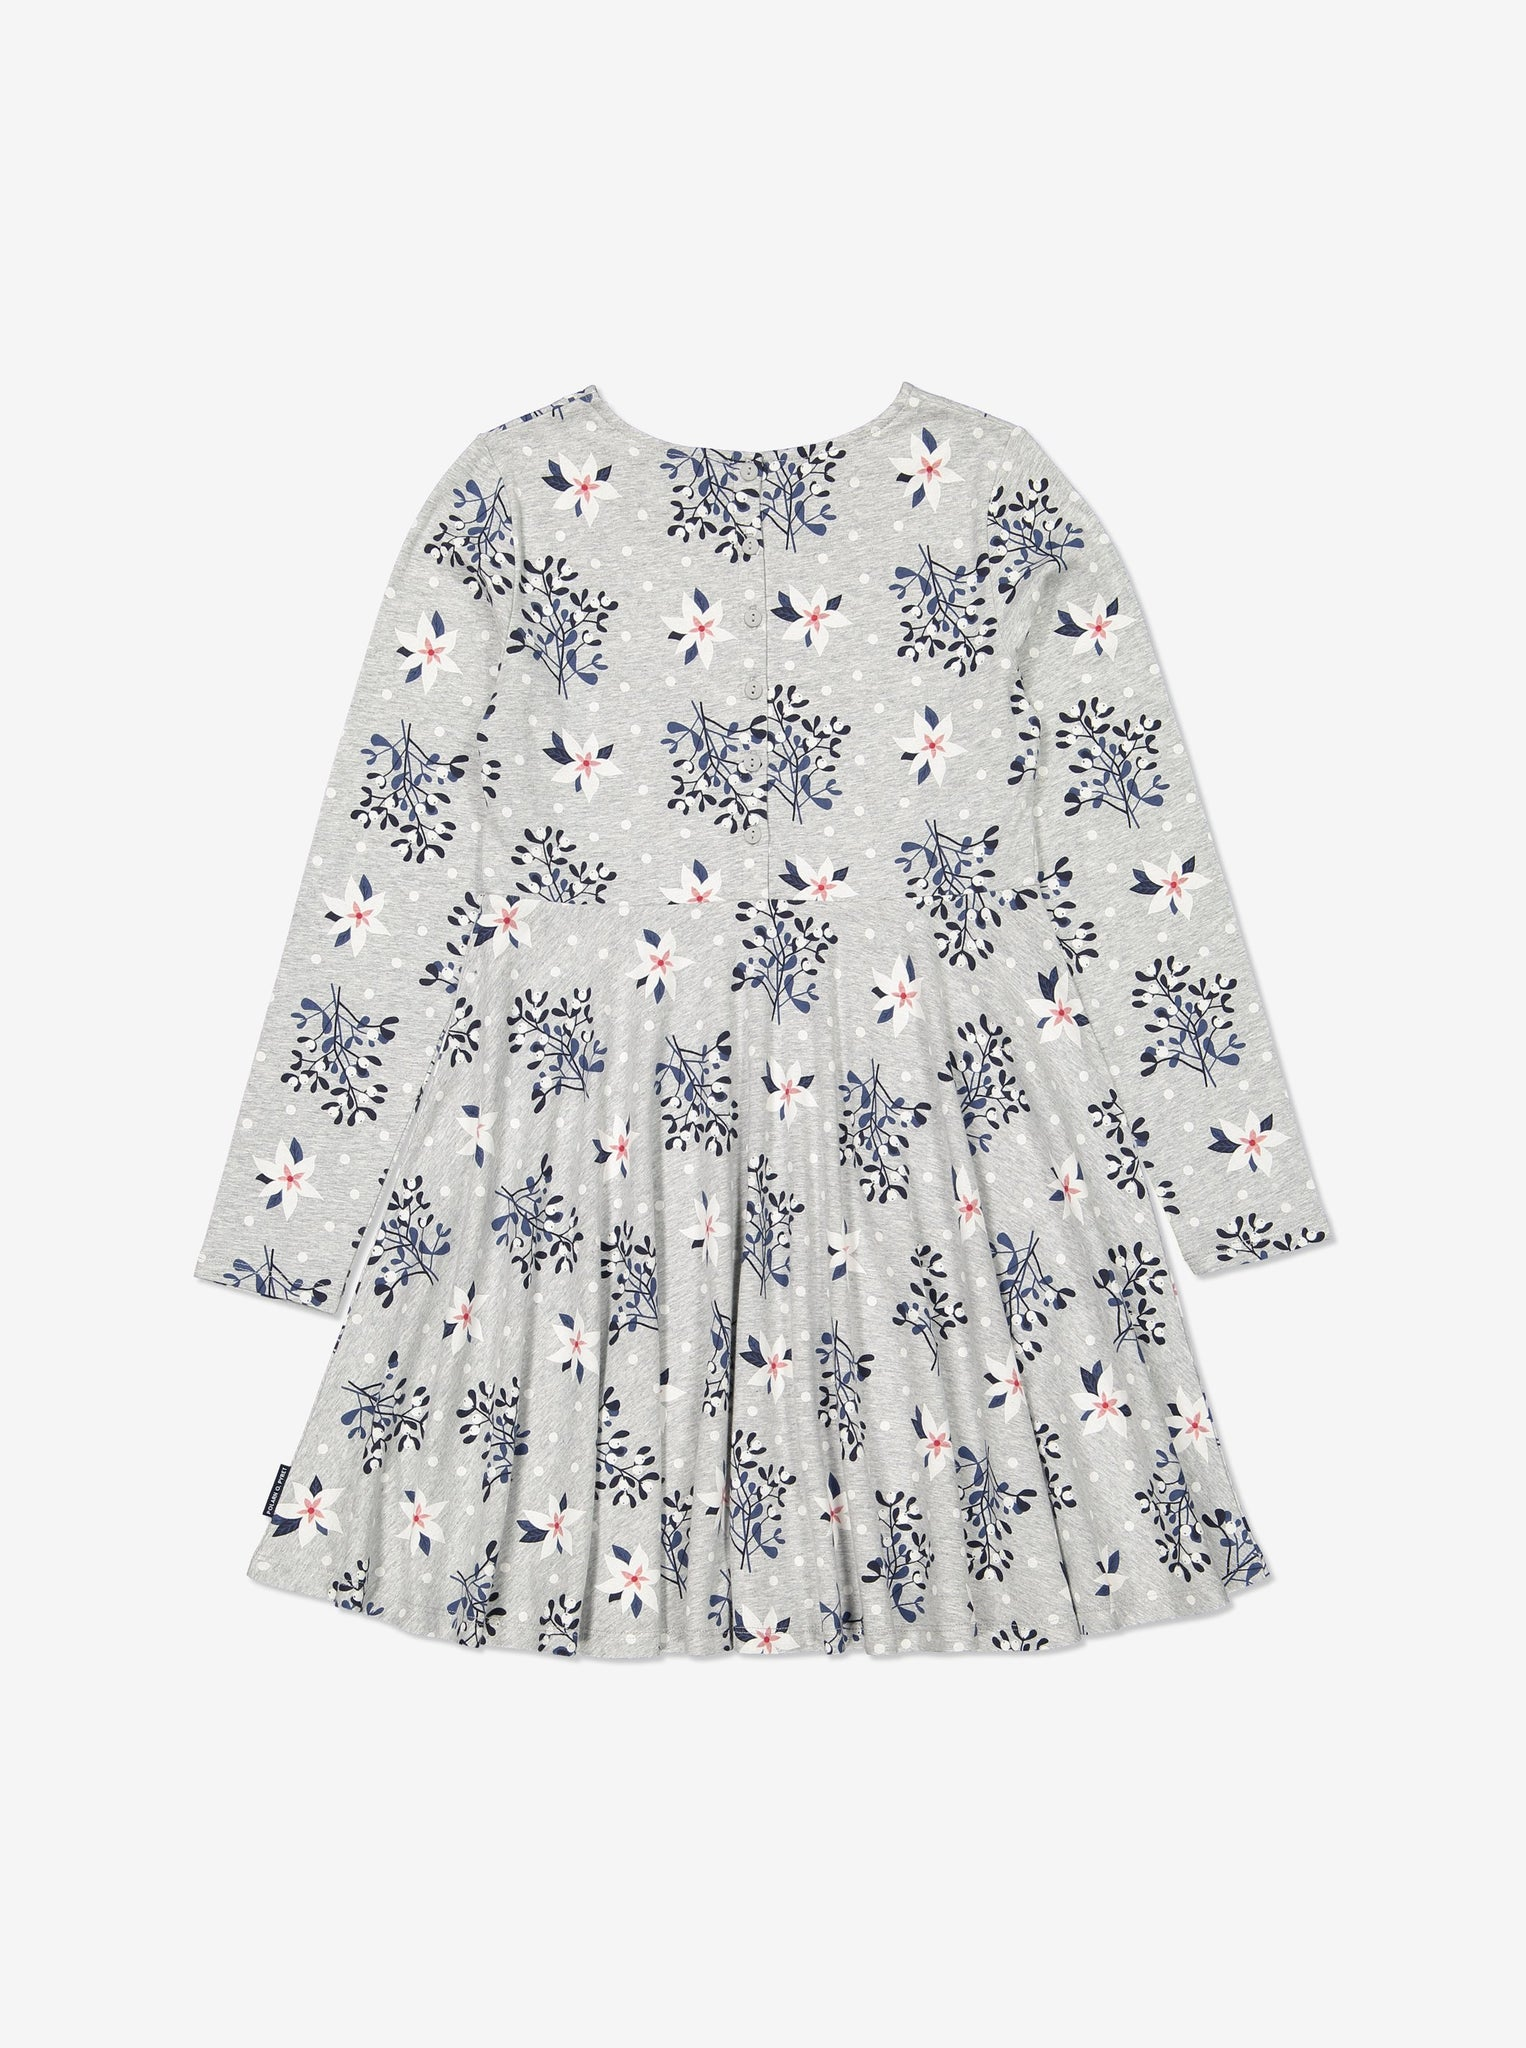 Kids Organic Cotton Mistletoe Print Dress 1-12years Grey Girl